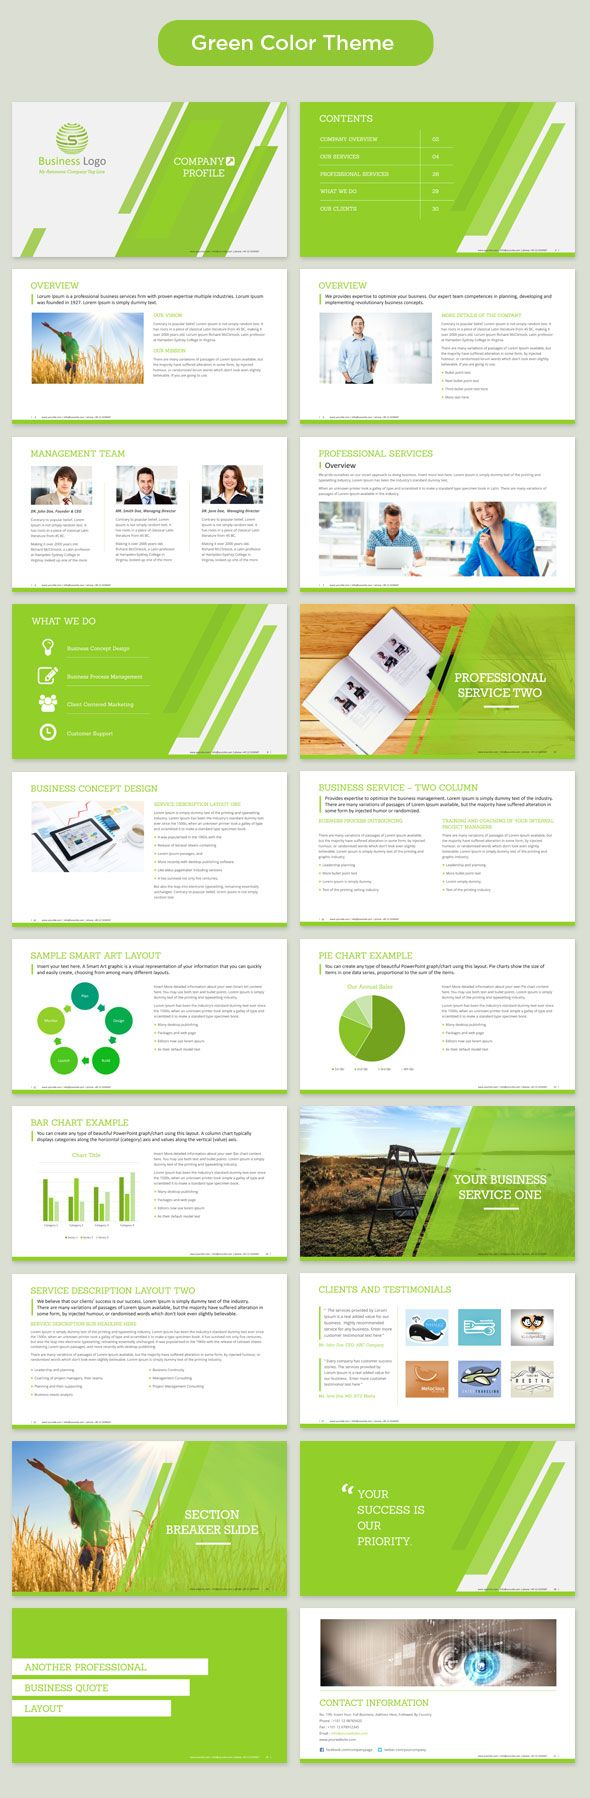 Corporate Profile Powerpoint Template Green Company Profile Template Company Profile Powerpoint Templates